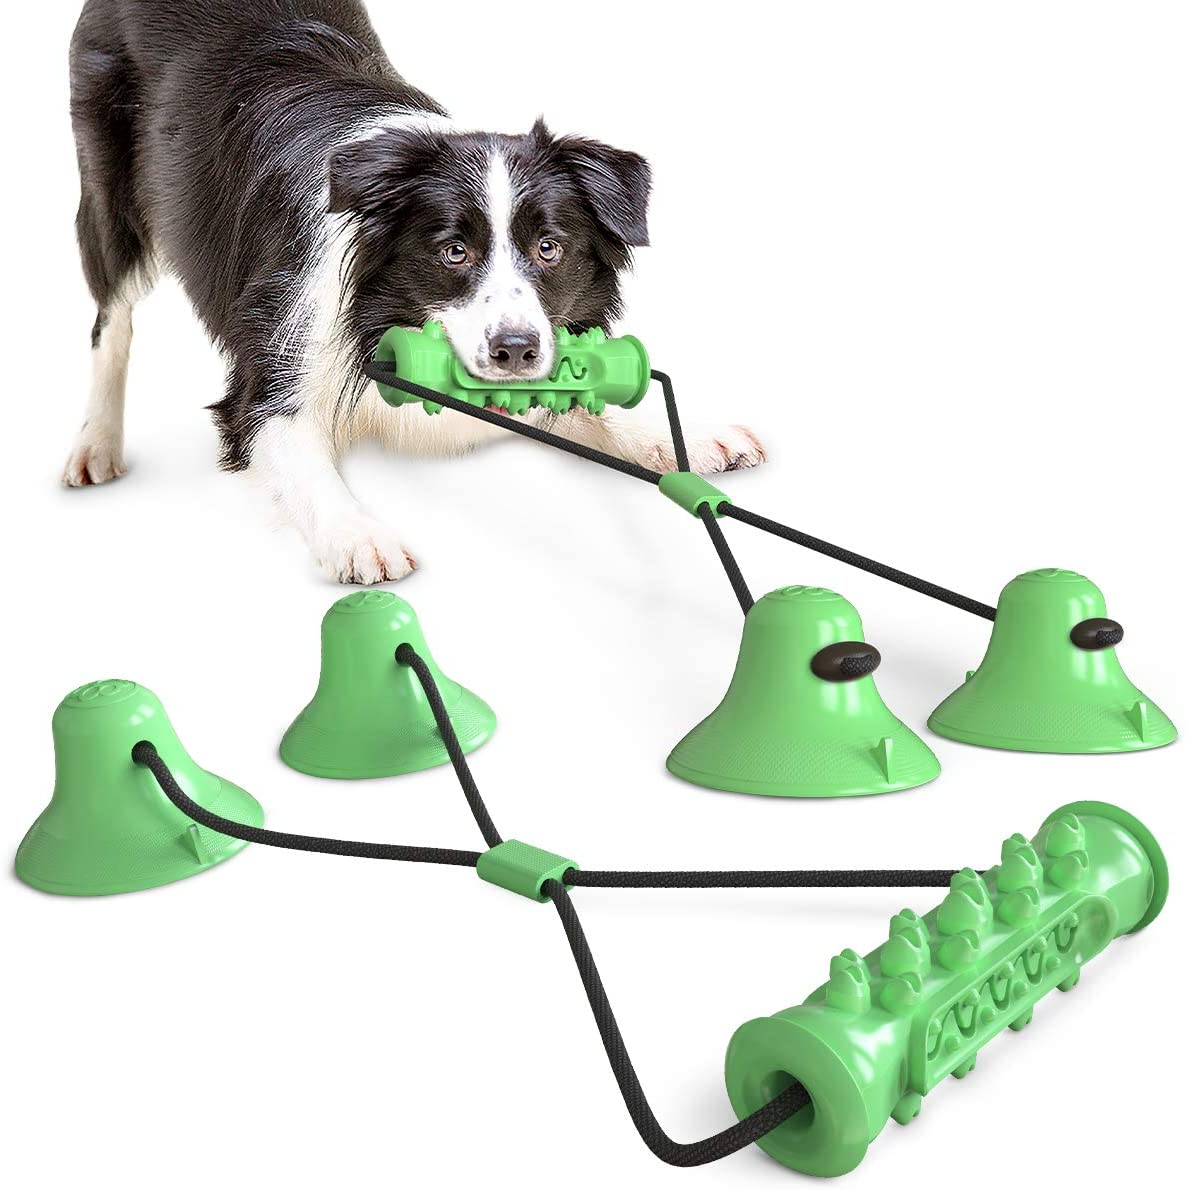 USWT Dog Tug-of-War Toy with Two Suction Cups,Rope Ball Pull Toy, Teeth Cleaning Dog Chew Training Toy